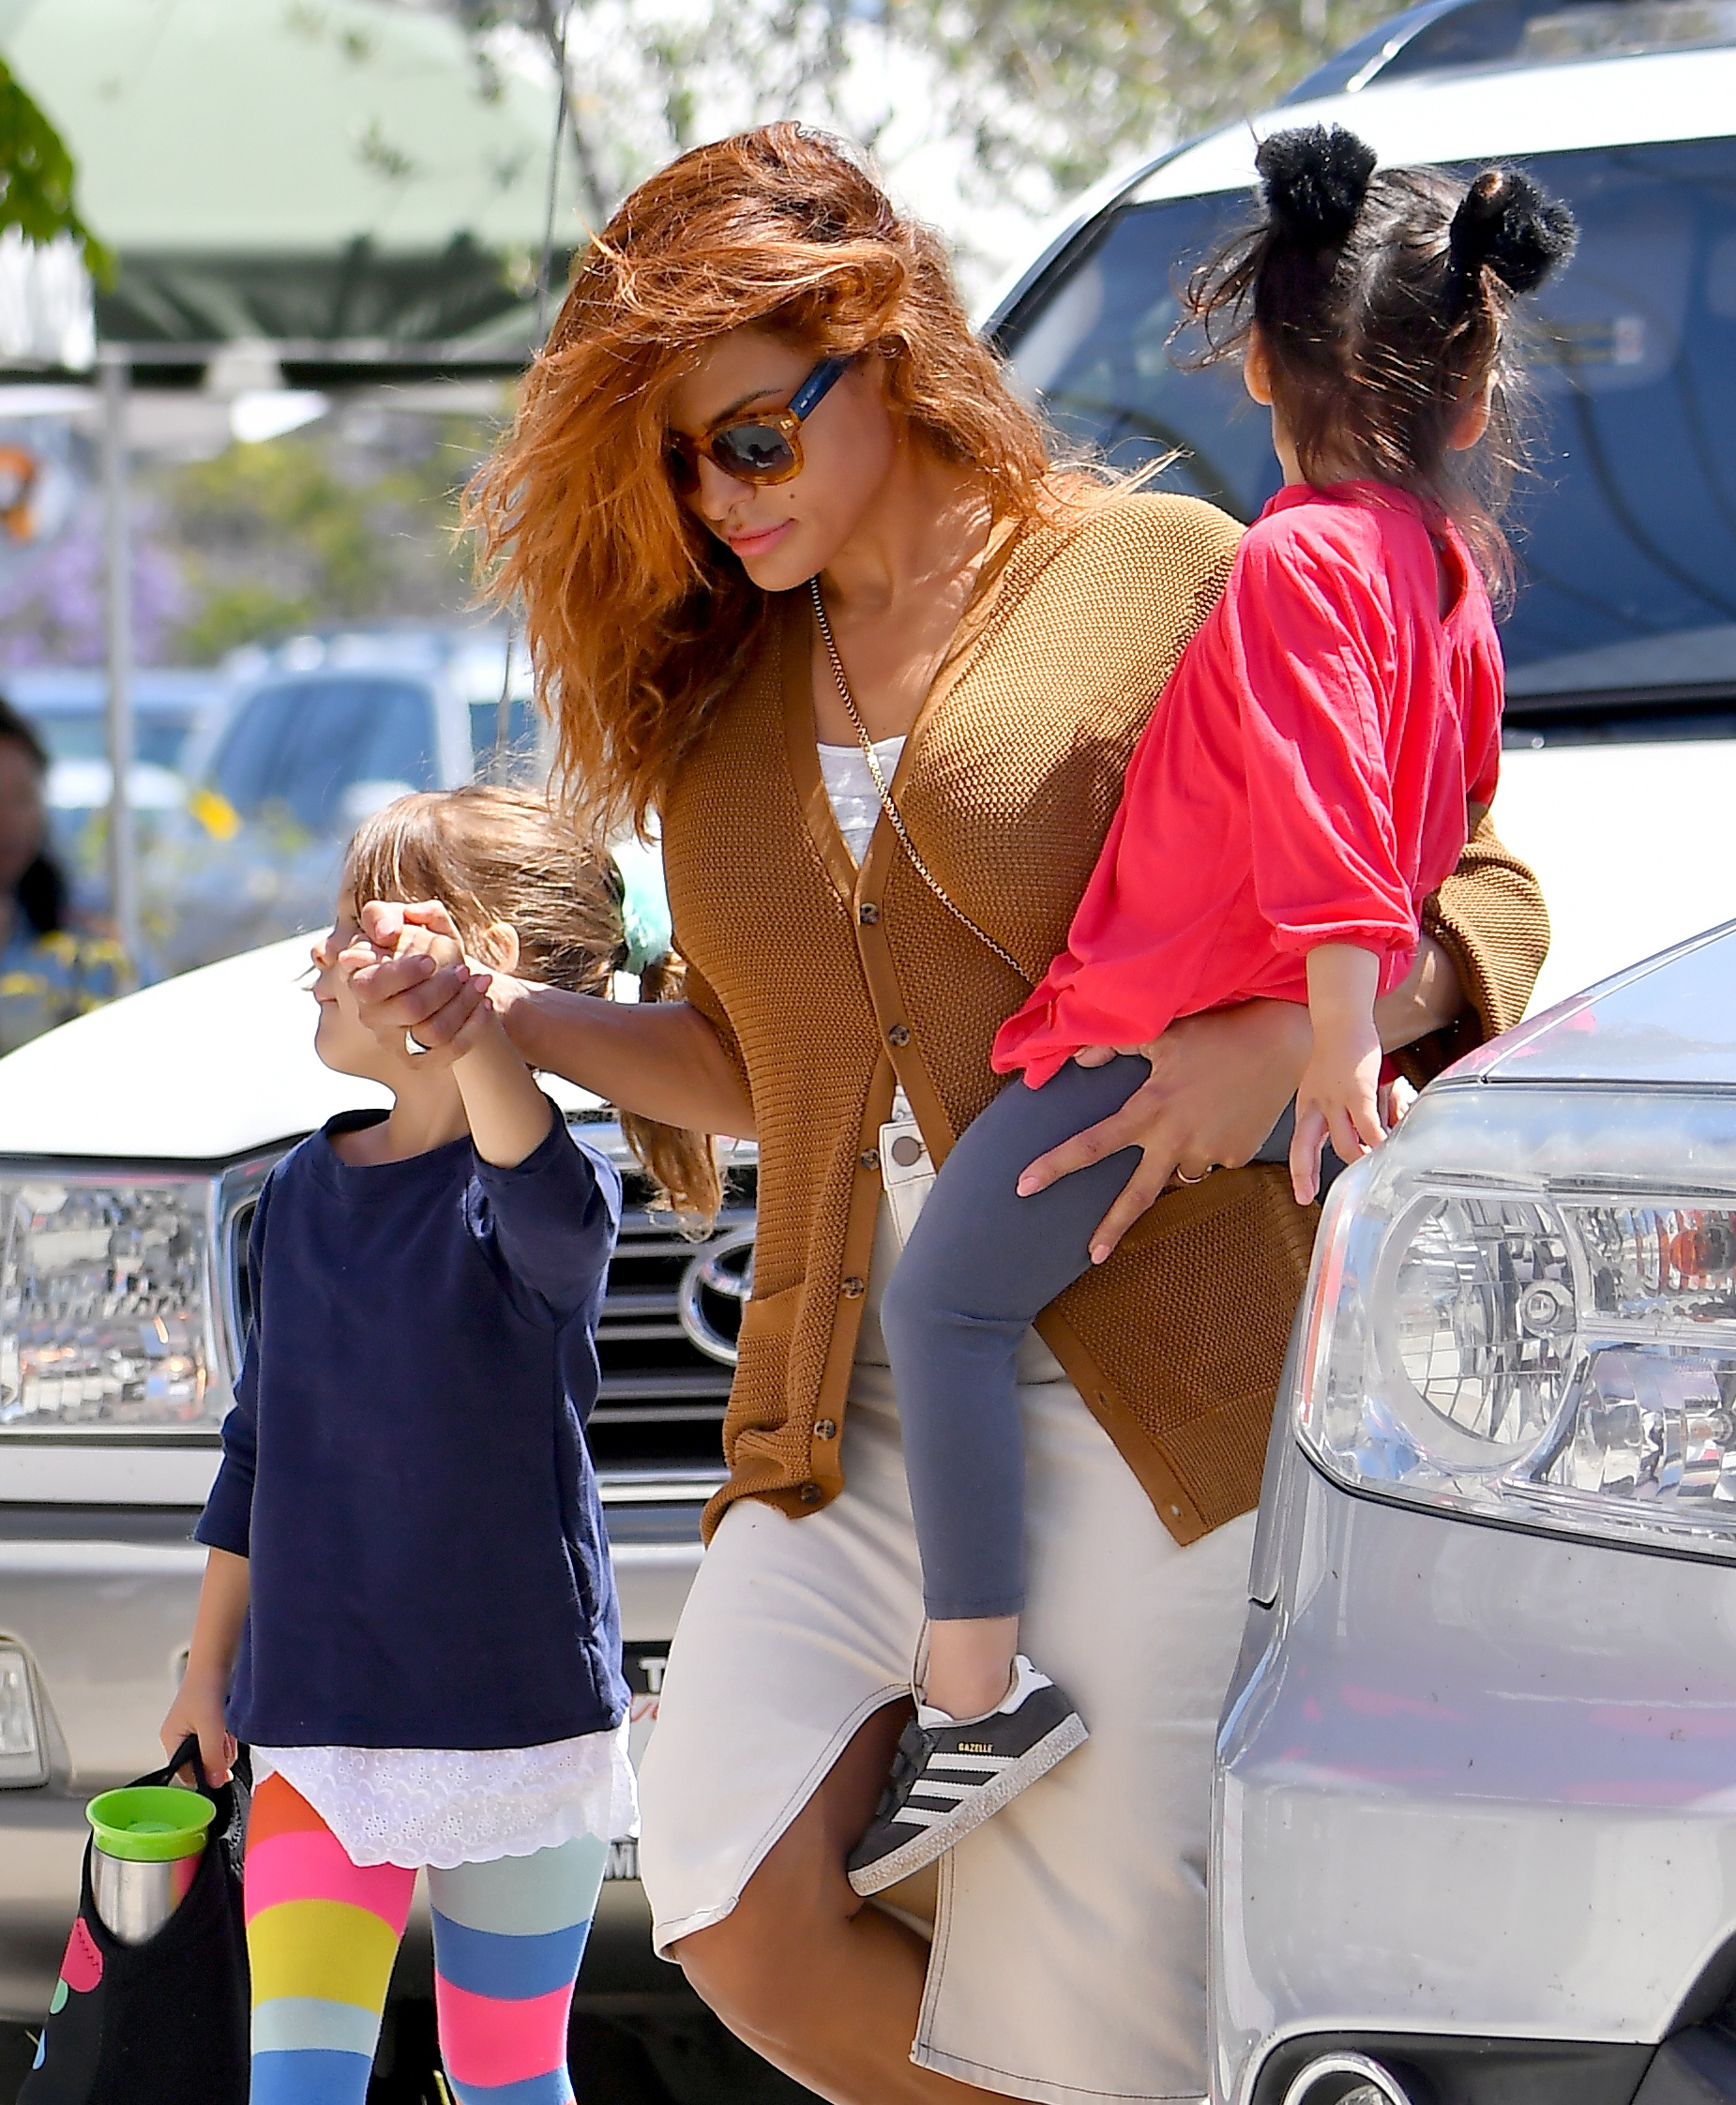 Eva Mendes Jokes the 'Hardest Part' of Parenting Is Carrying Around 'Fresh' Snacks for Your Kids